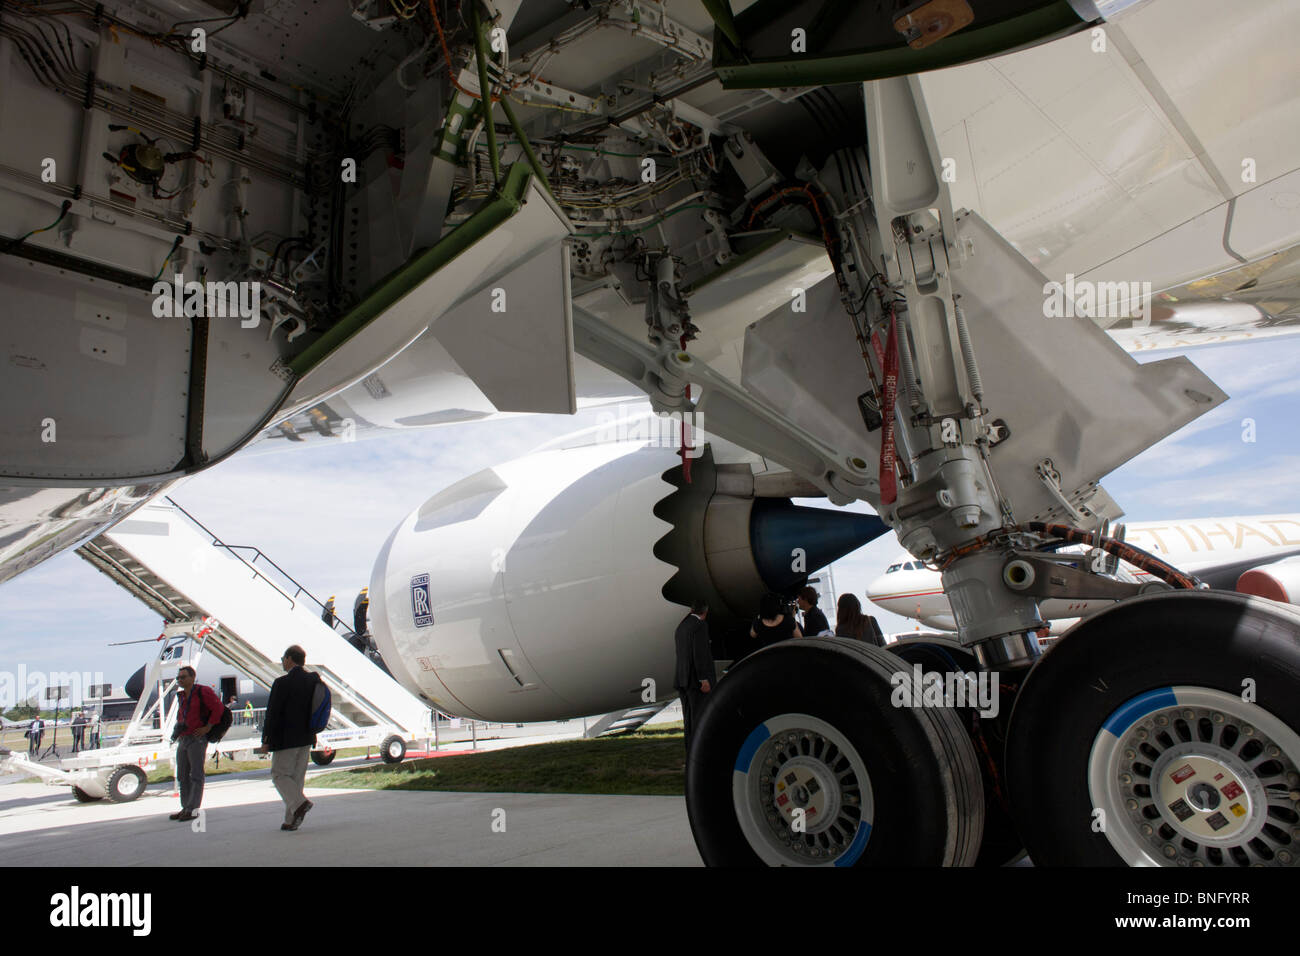 Undercarriage of Boeing's new 787 Dreamliner at Farnborough Airshow - Stock Image